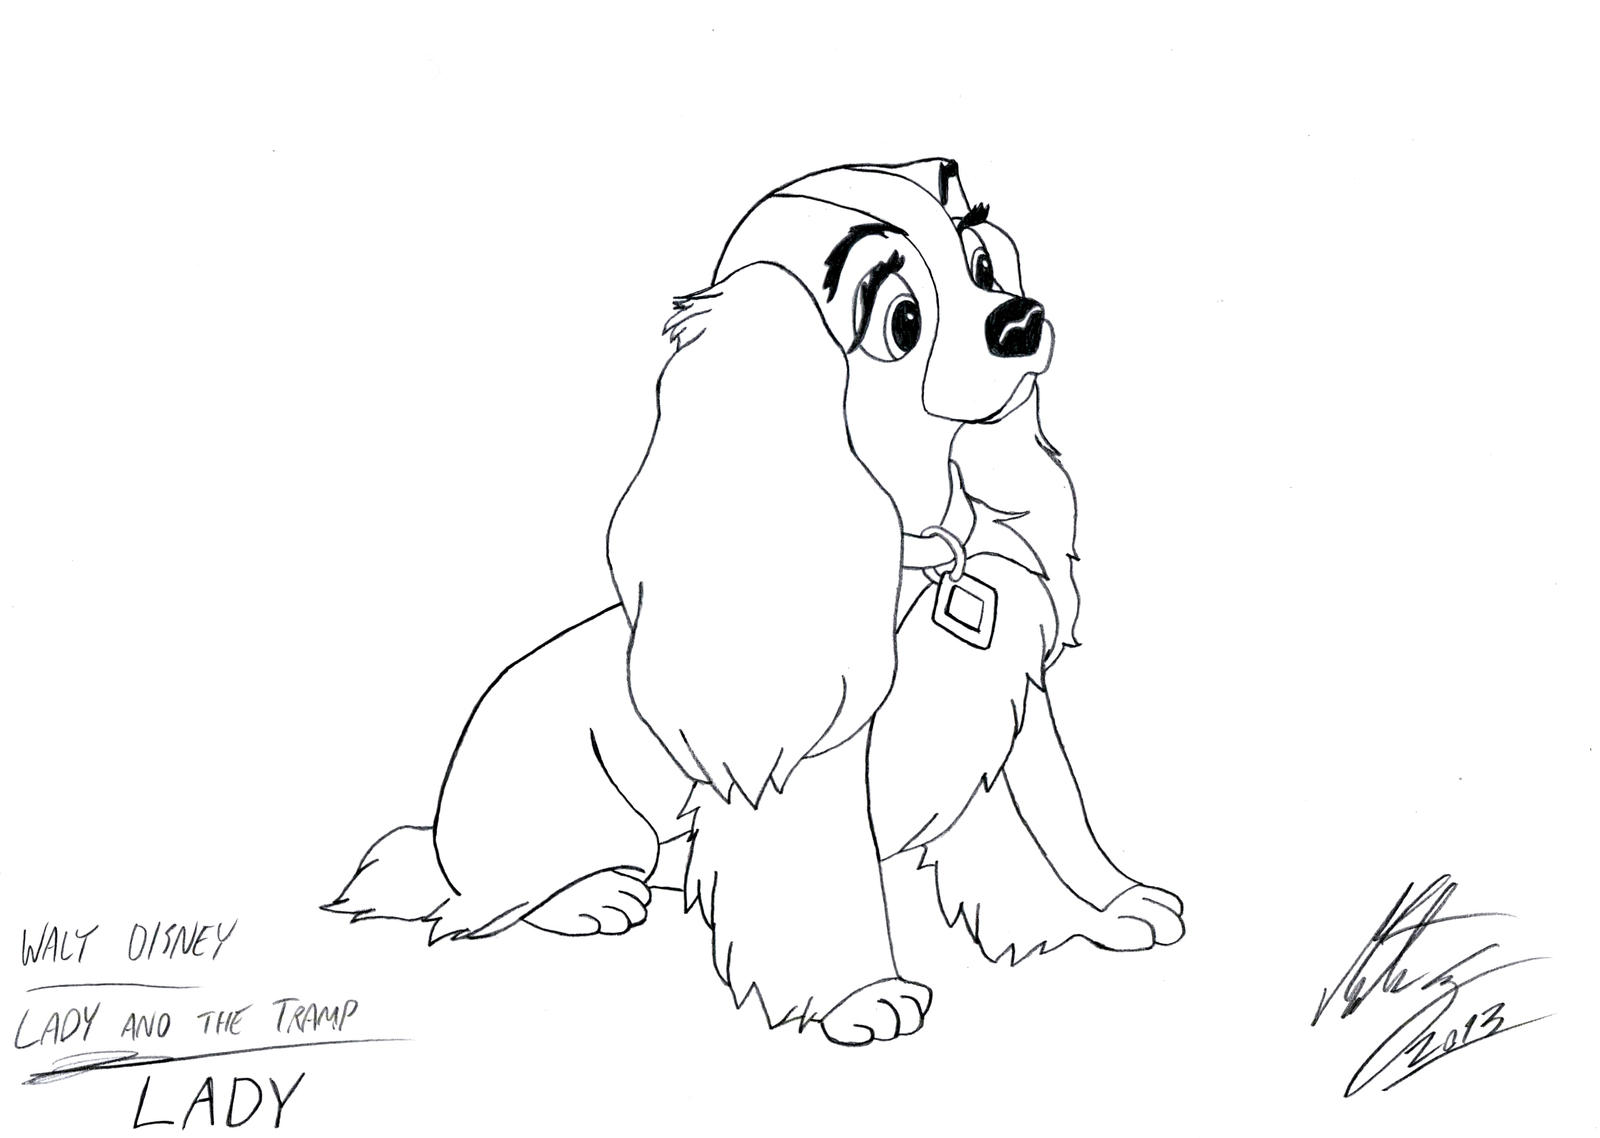 Lady and the Tramp - Lady by MortenEng21 on DeviantArt